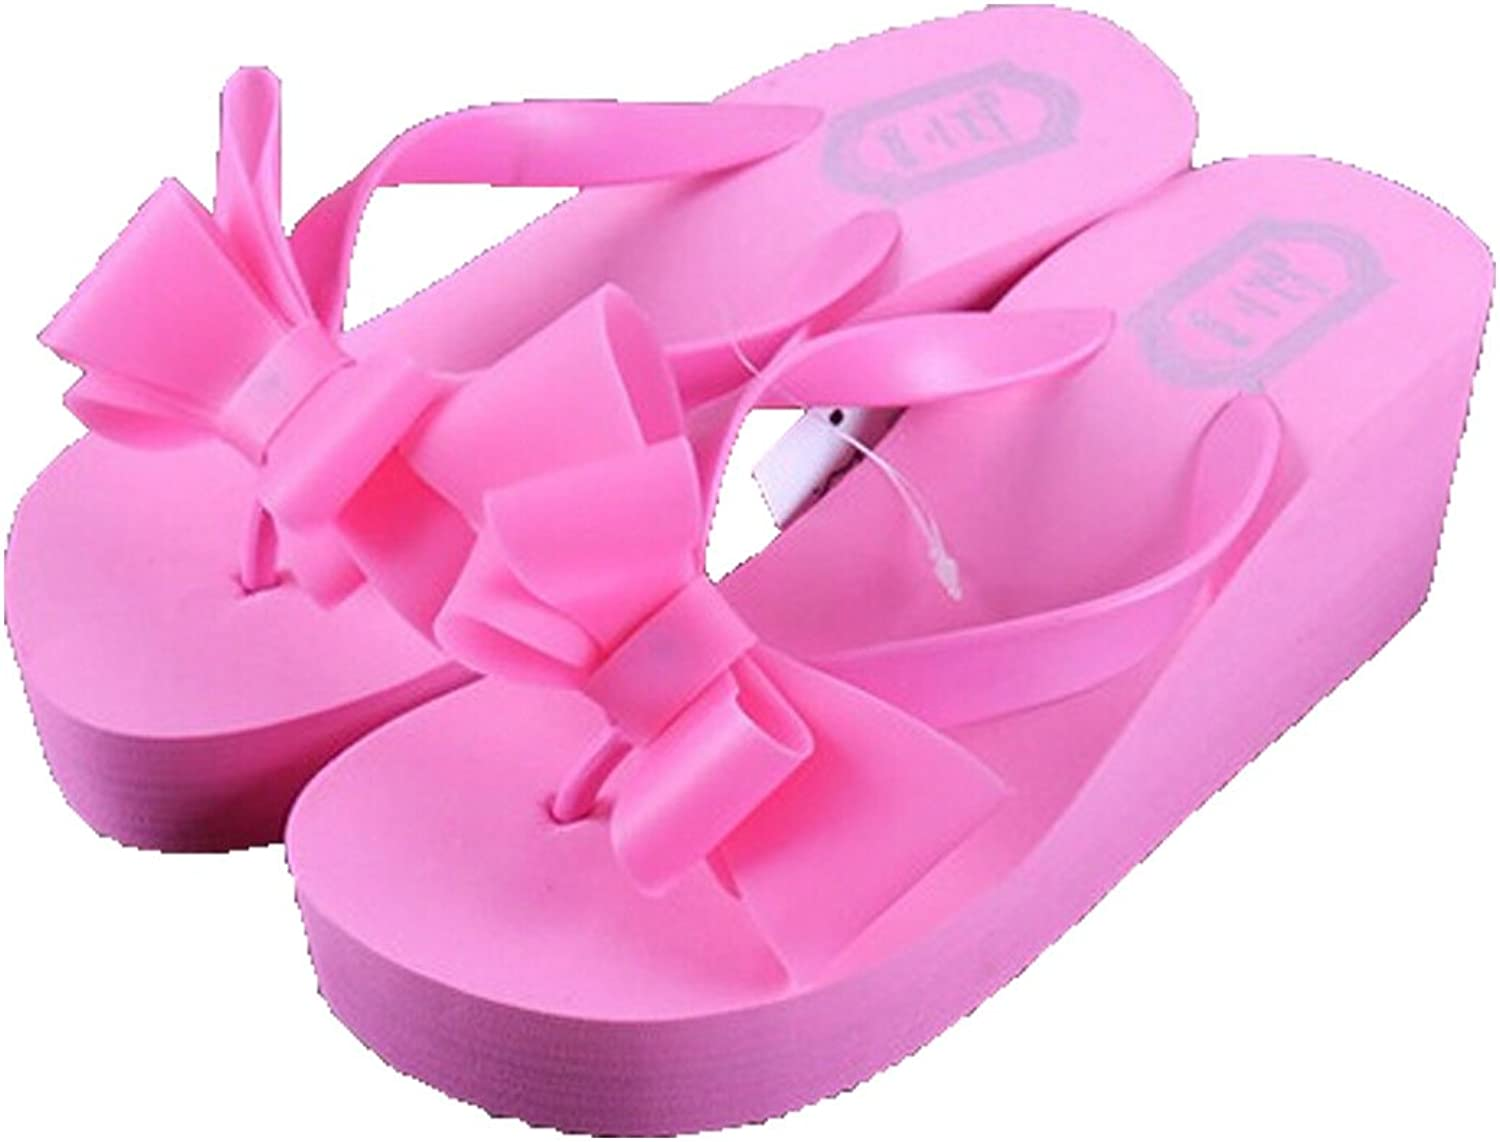 San hojas Thick Platform Flip Flop Beach shoes with Bowtie Slippers Pink